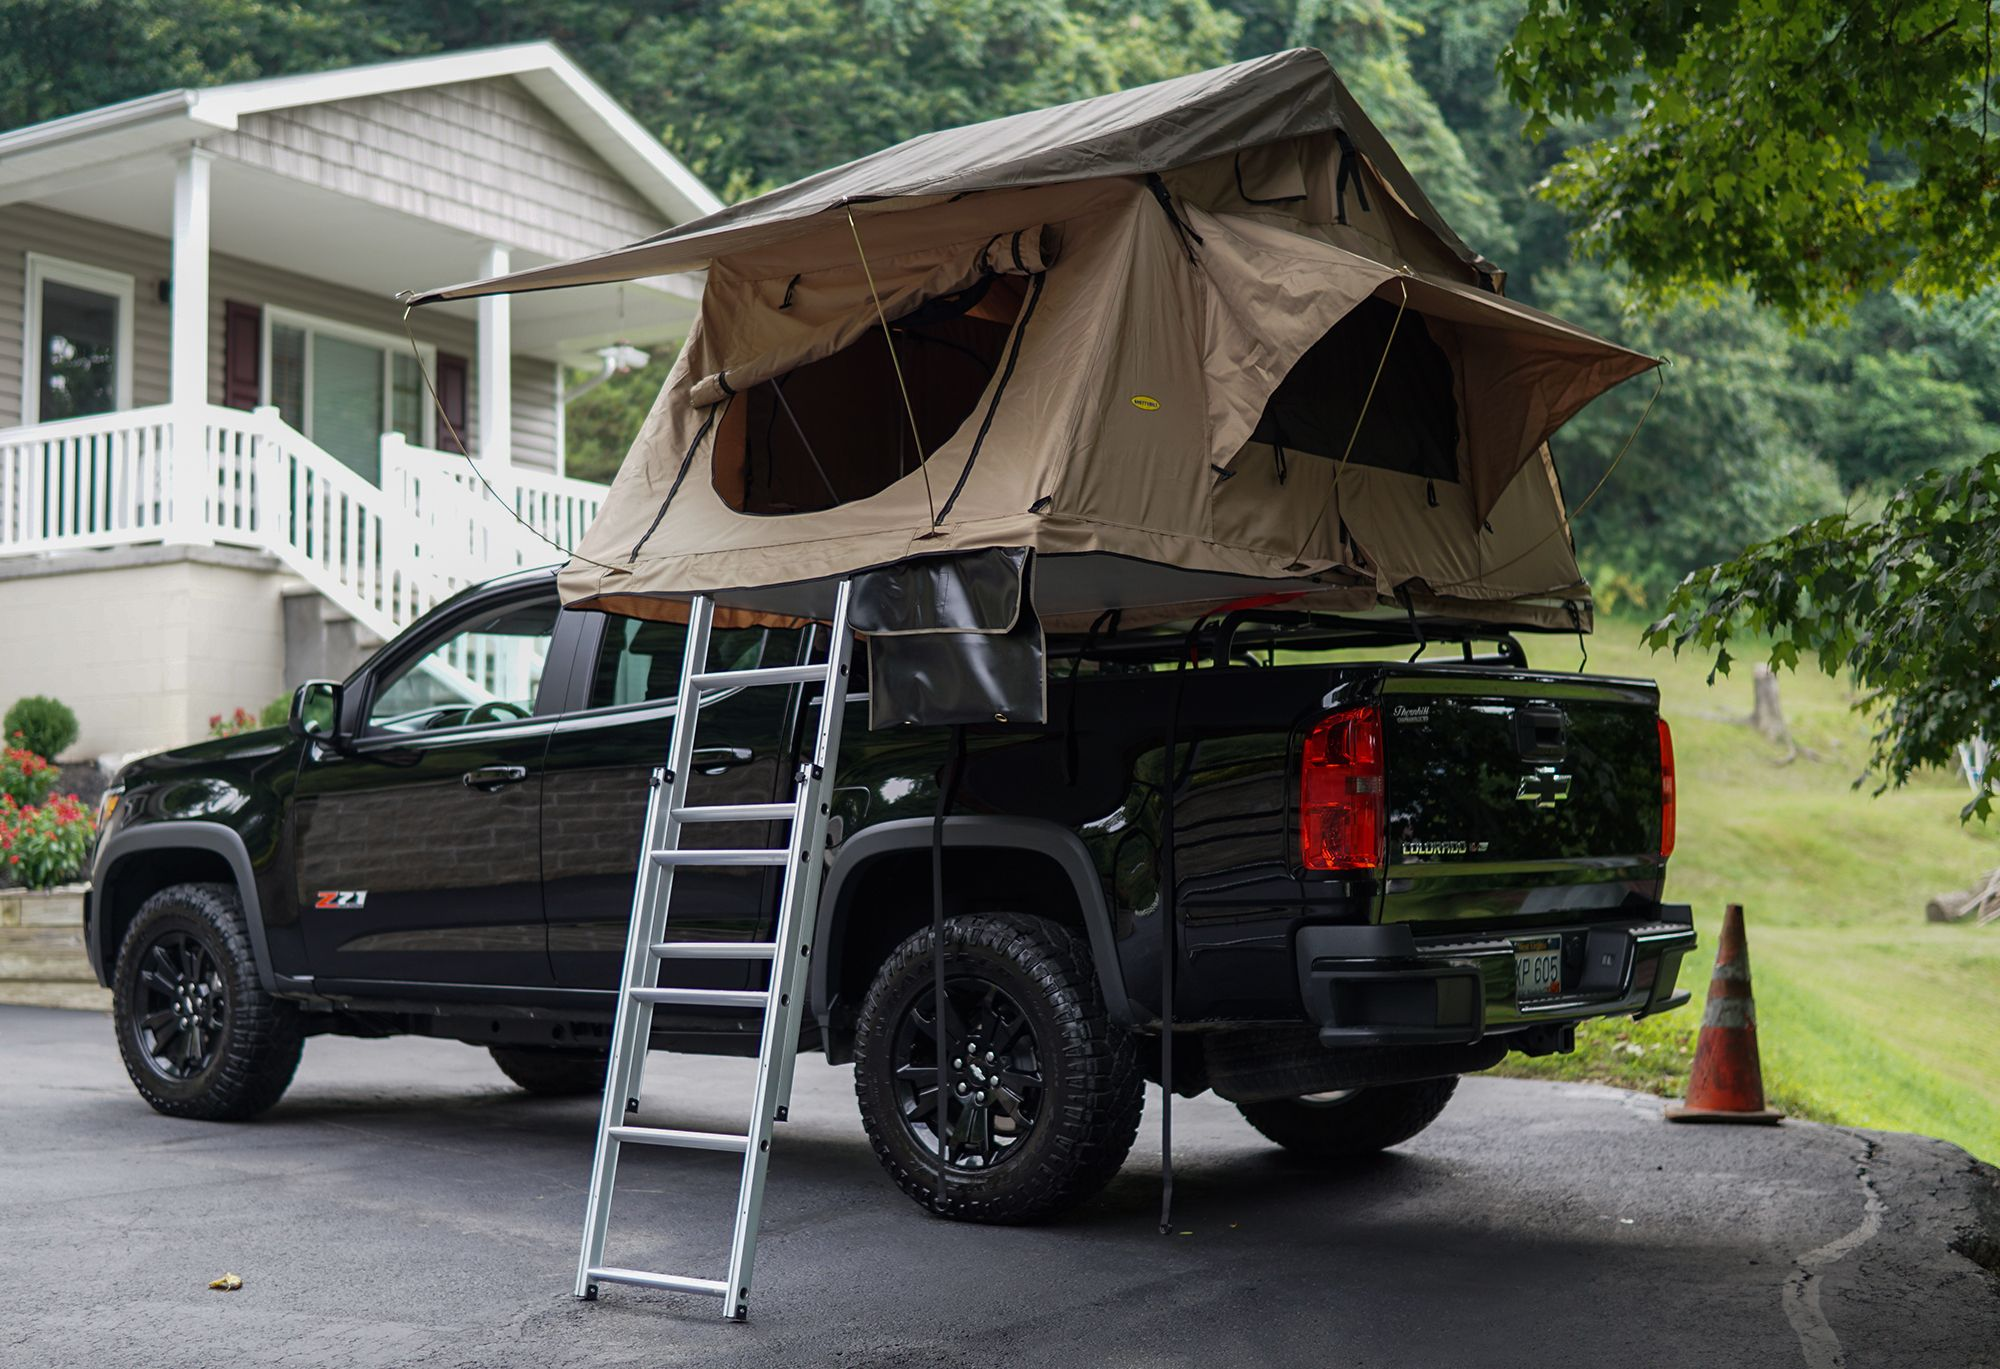 Low Profile Over The Bed Rack Truck Bed Tent Roof Top Tent Truck Bed